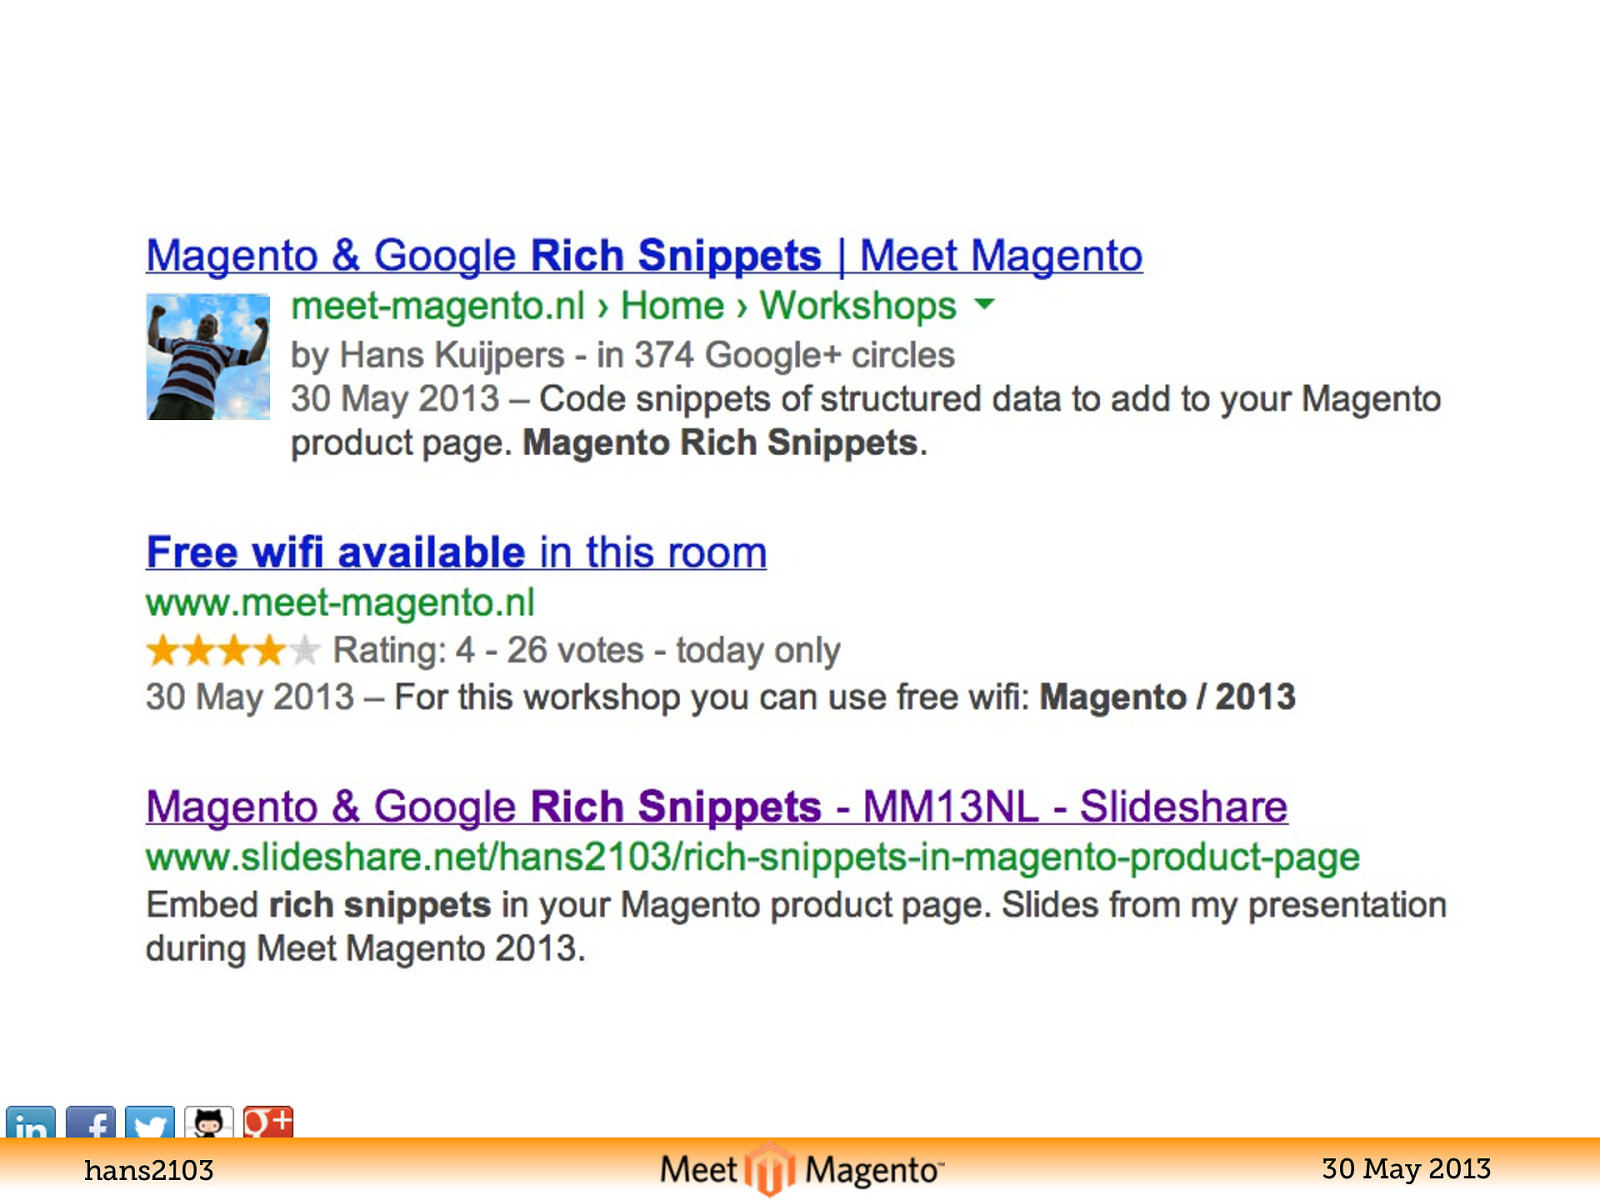 Rich Snippets in Magento product page